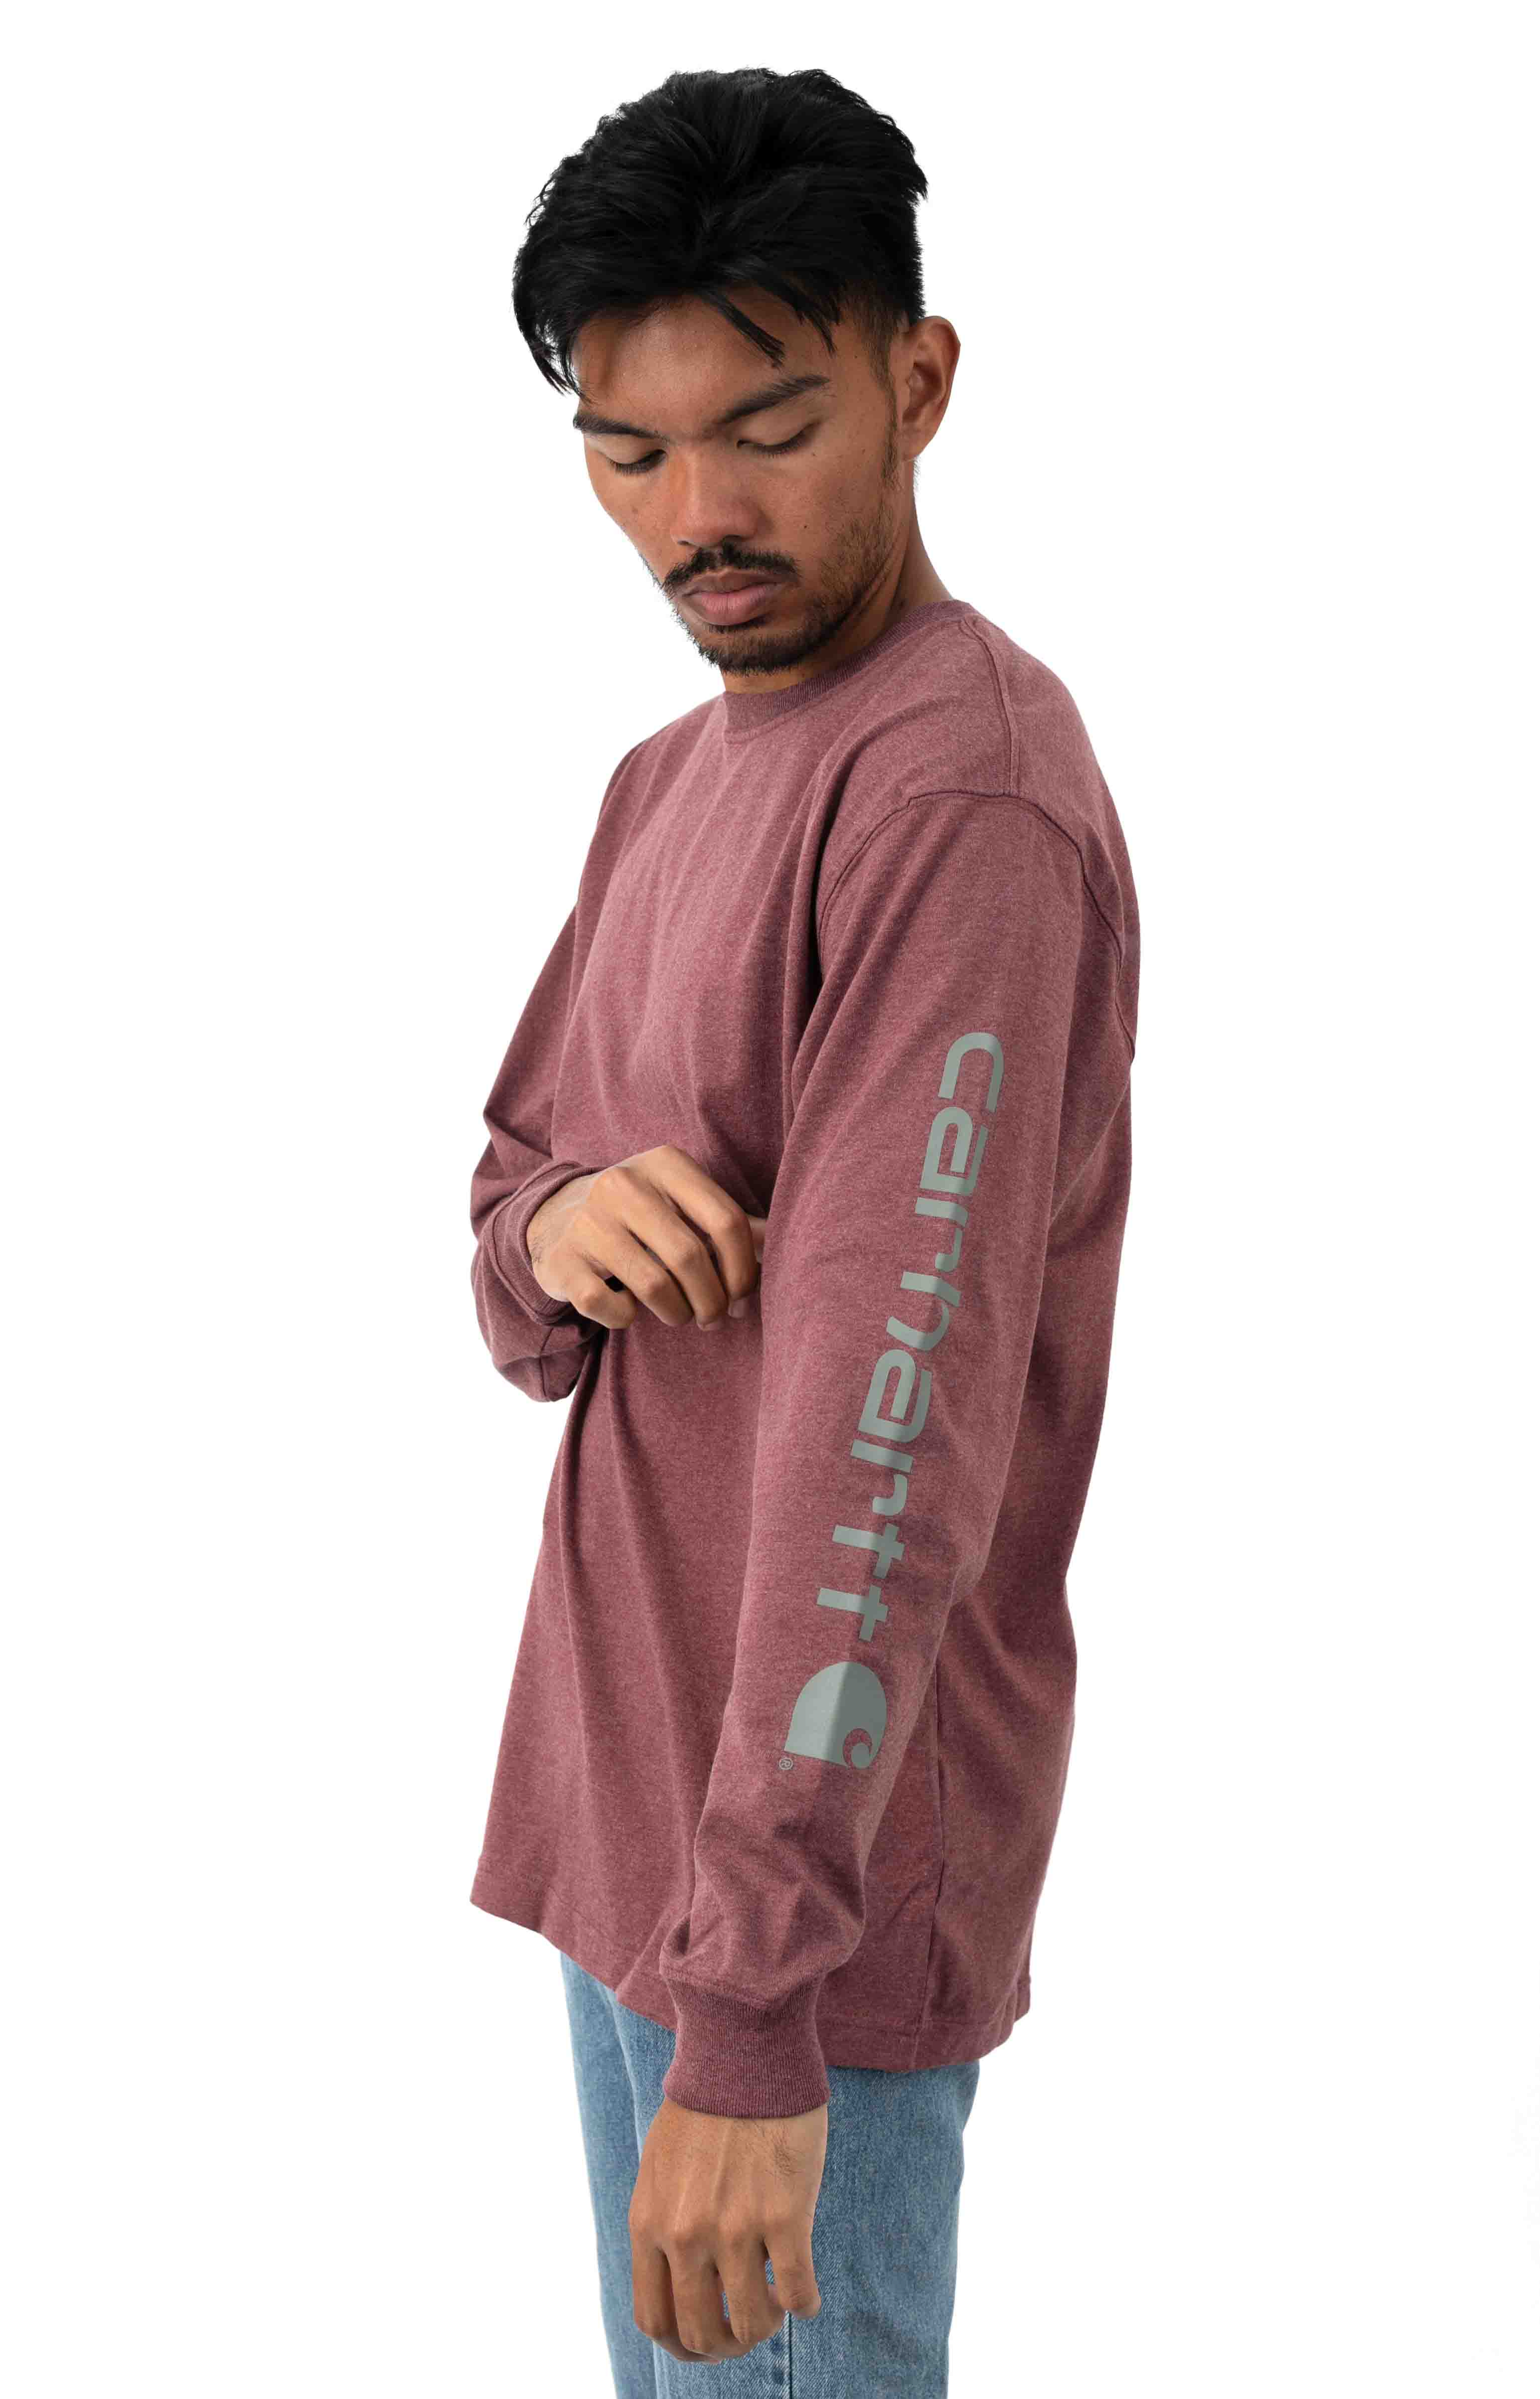 (K231) Signature Sleeve Logo L/S Shirt - Iron Ore Heather  2